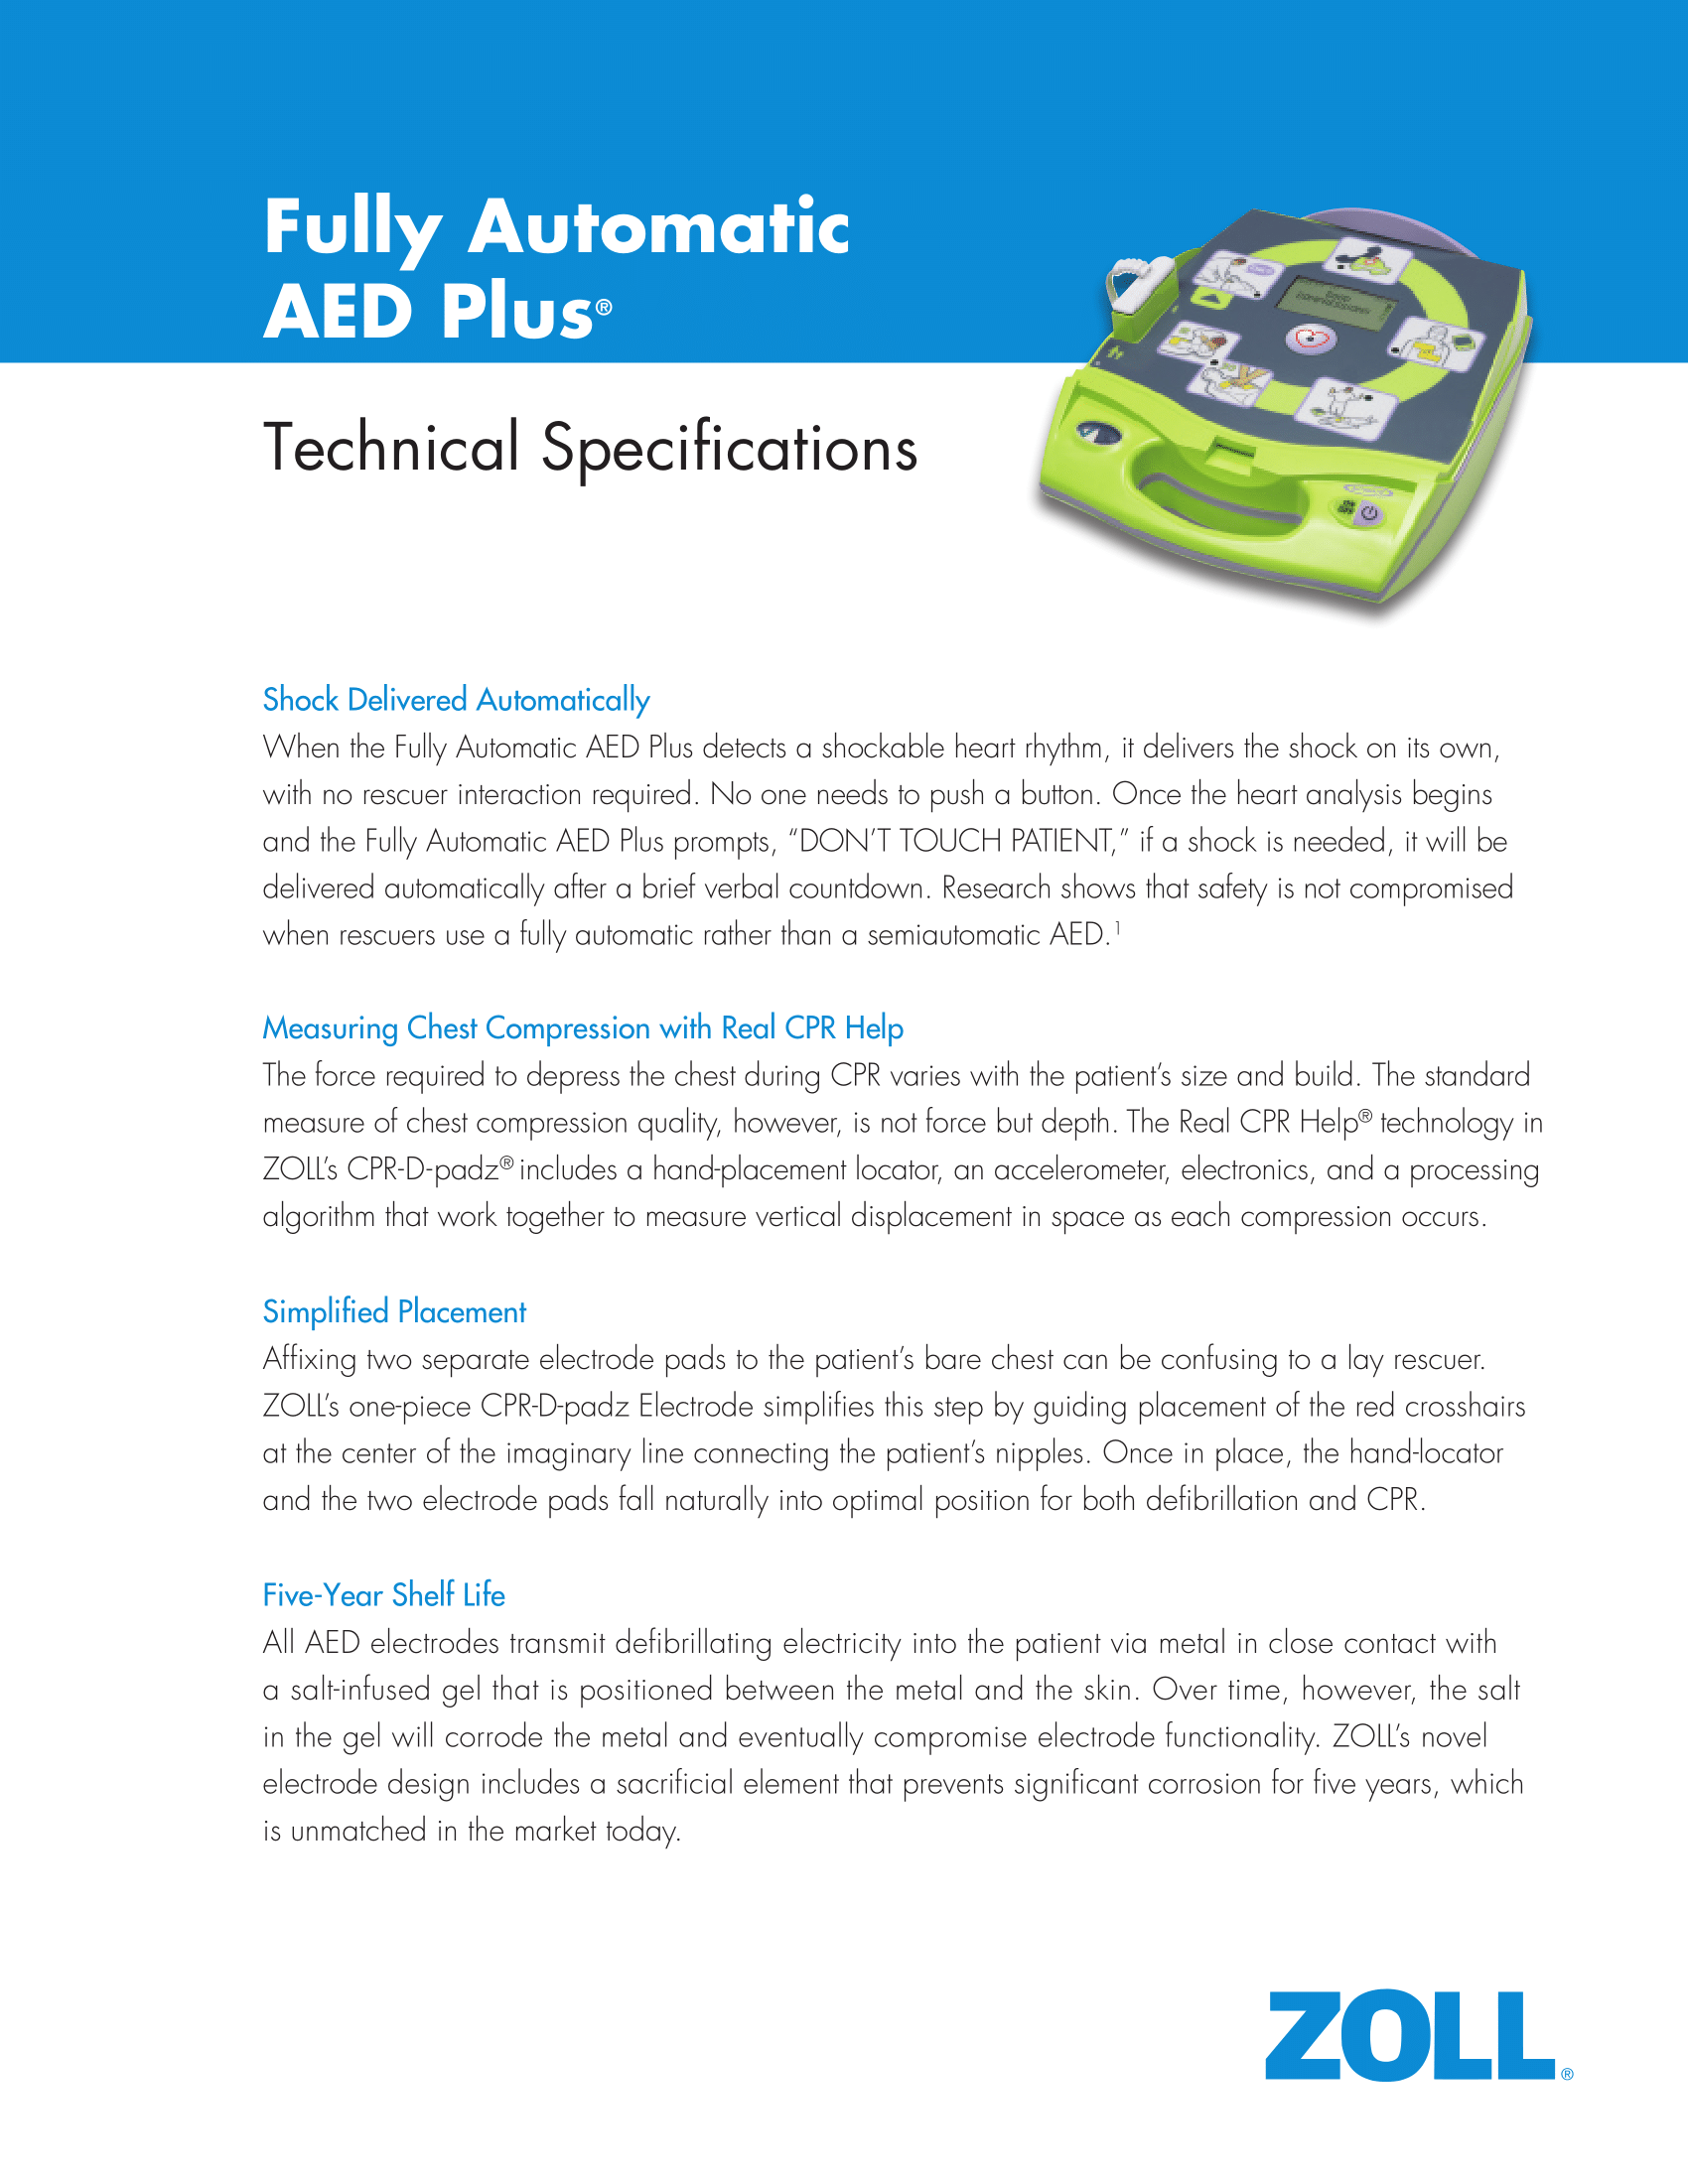 ZOLL AED Plus Fully or Automatic